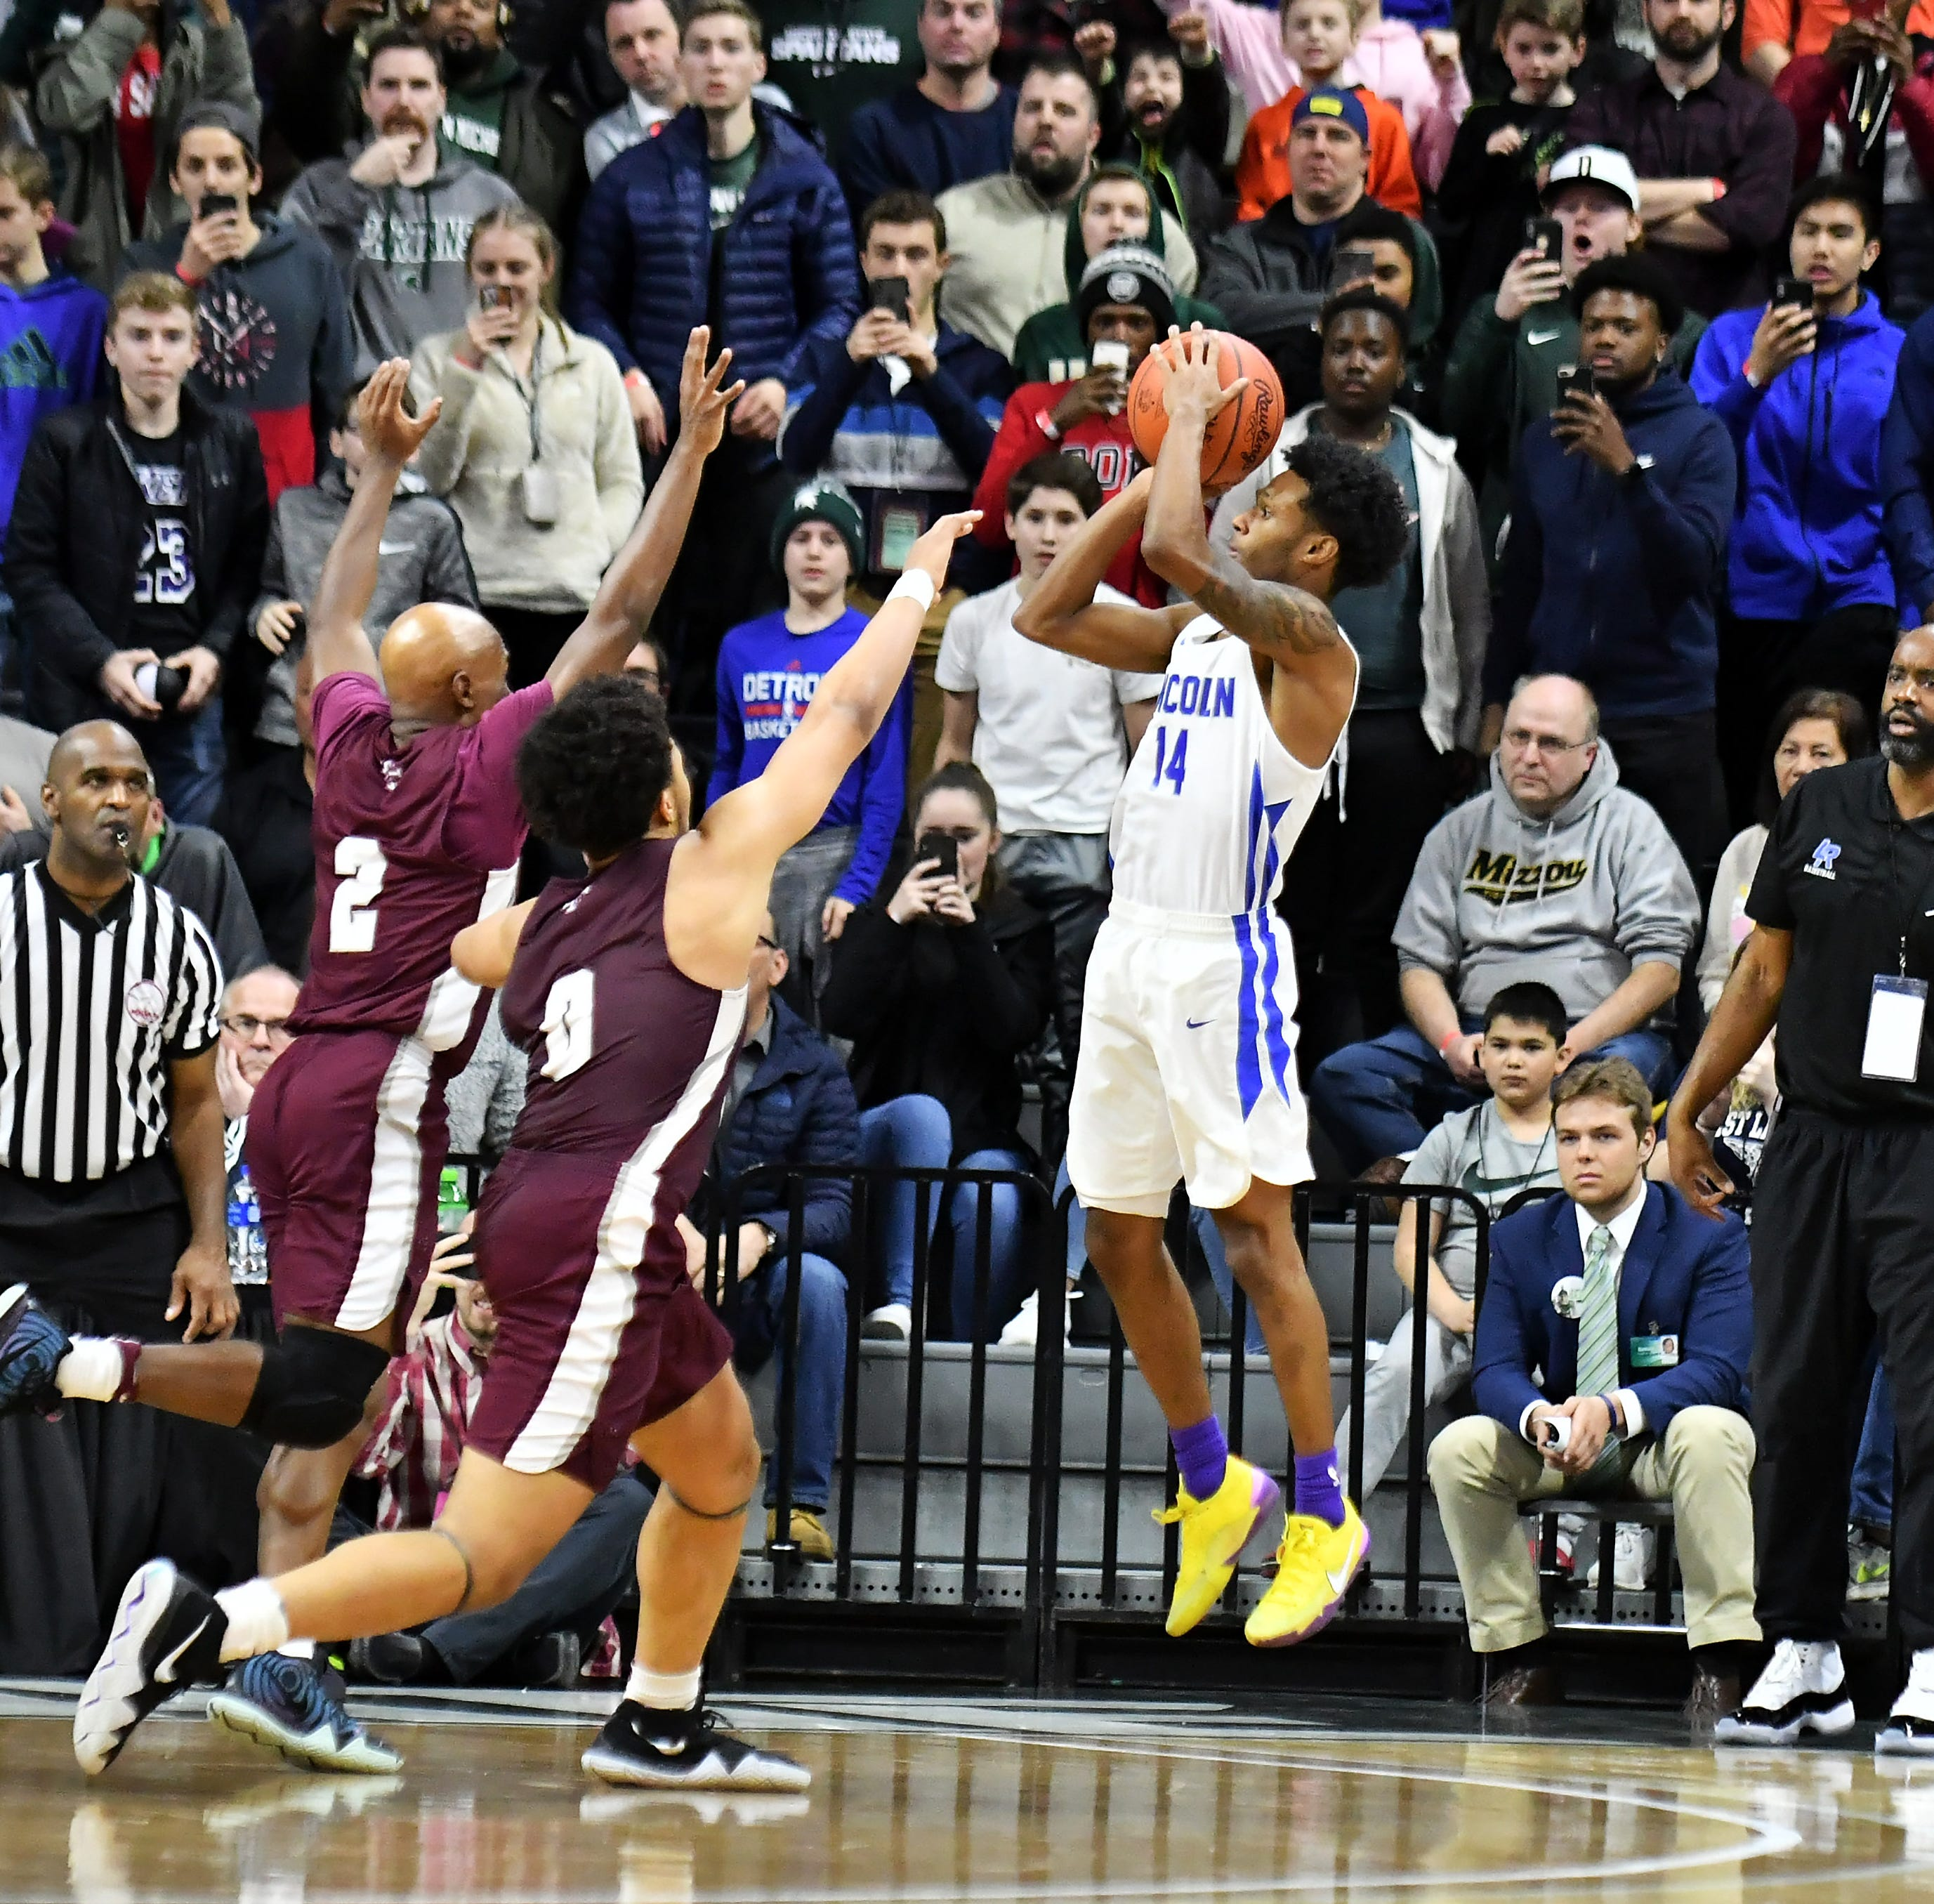 Division 1 final: Watch as Ypsilanti Lincoln shocks U-D Jesuit at the buzzer